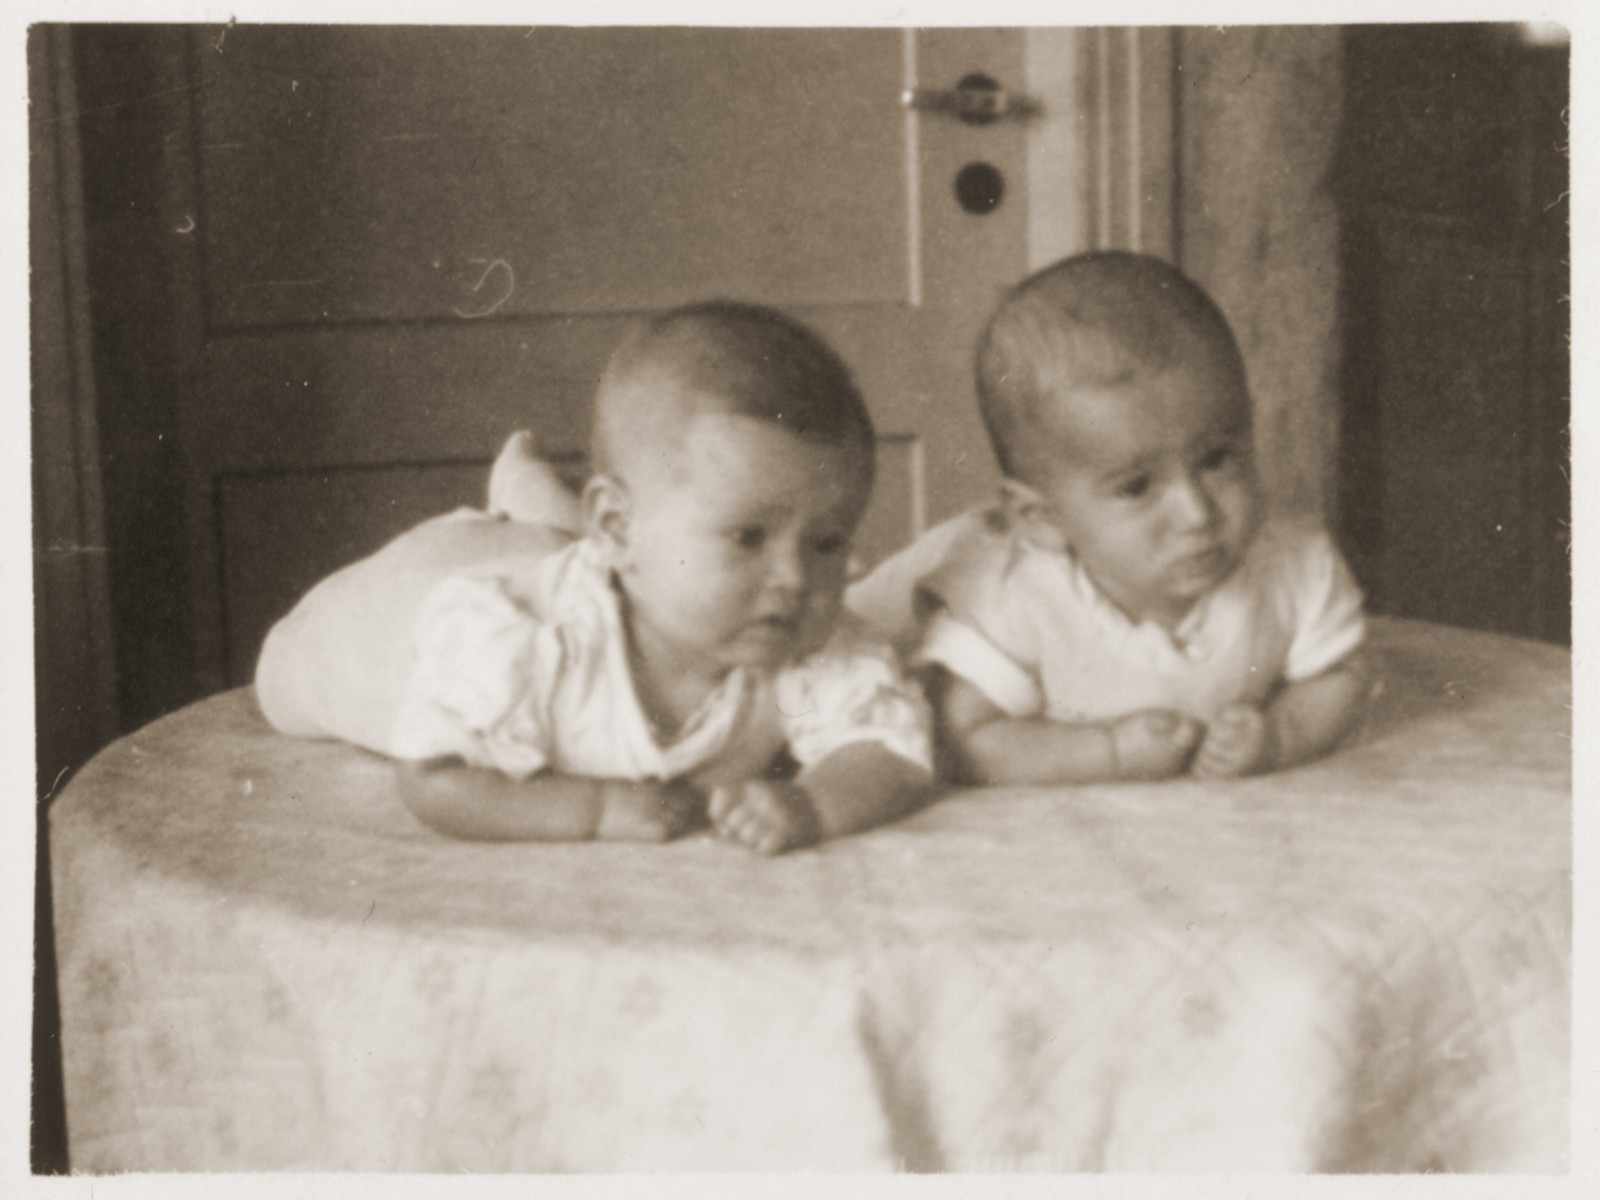 Twin Jewish DP infants lie on a table in the Bergen-Belsen displaced persons camp.  Pictured are Yaffa and Yitzchak Zyngier.  Their parents, Rachmiel and Eva Zyngier, were both were from Starachowice and were survivors of the Bergen-Belsen concentration camp.